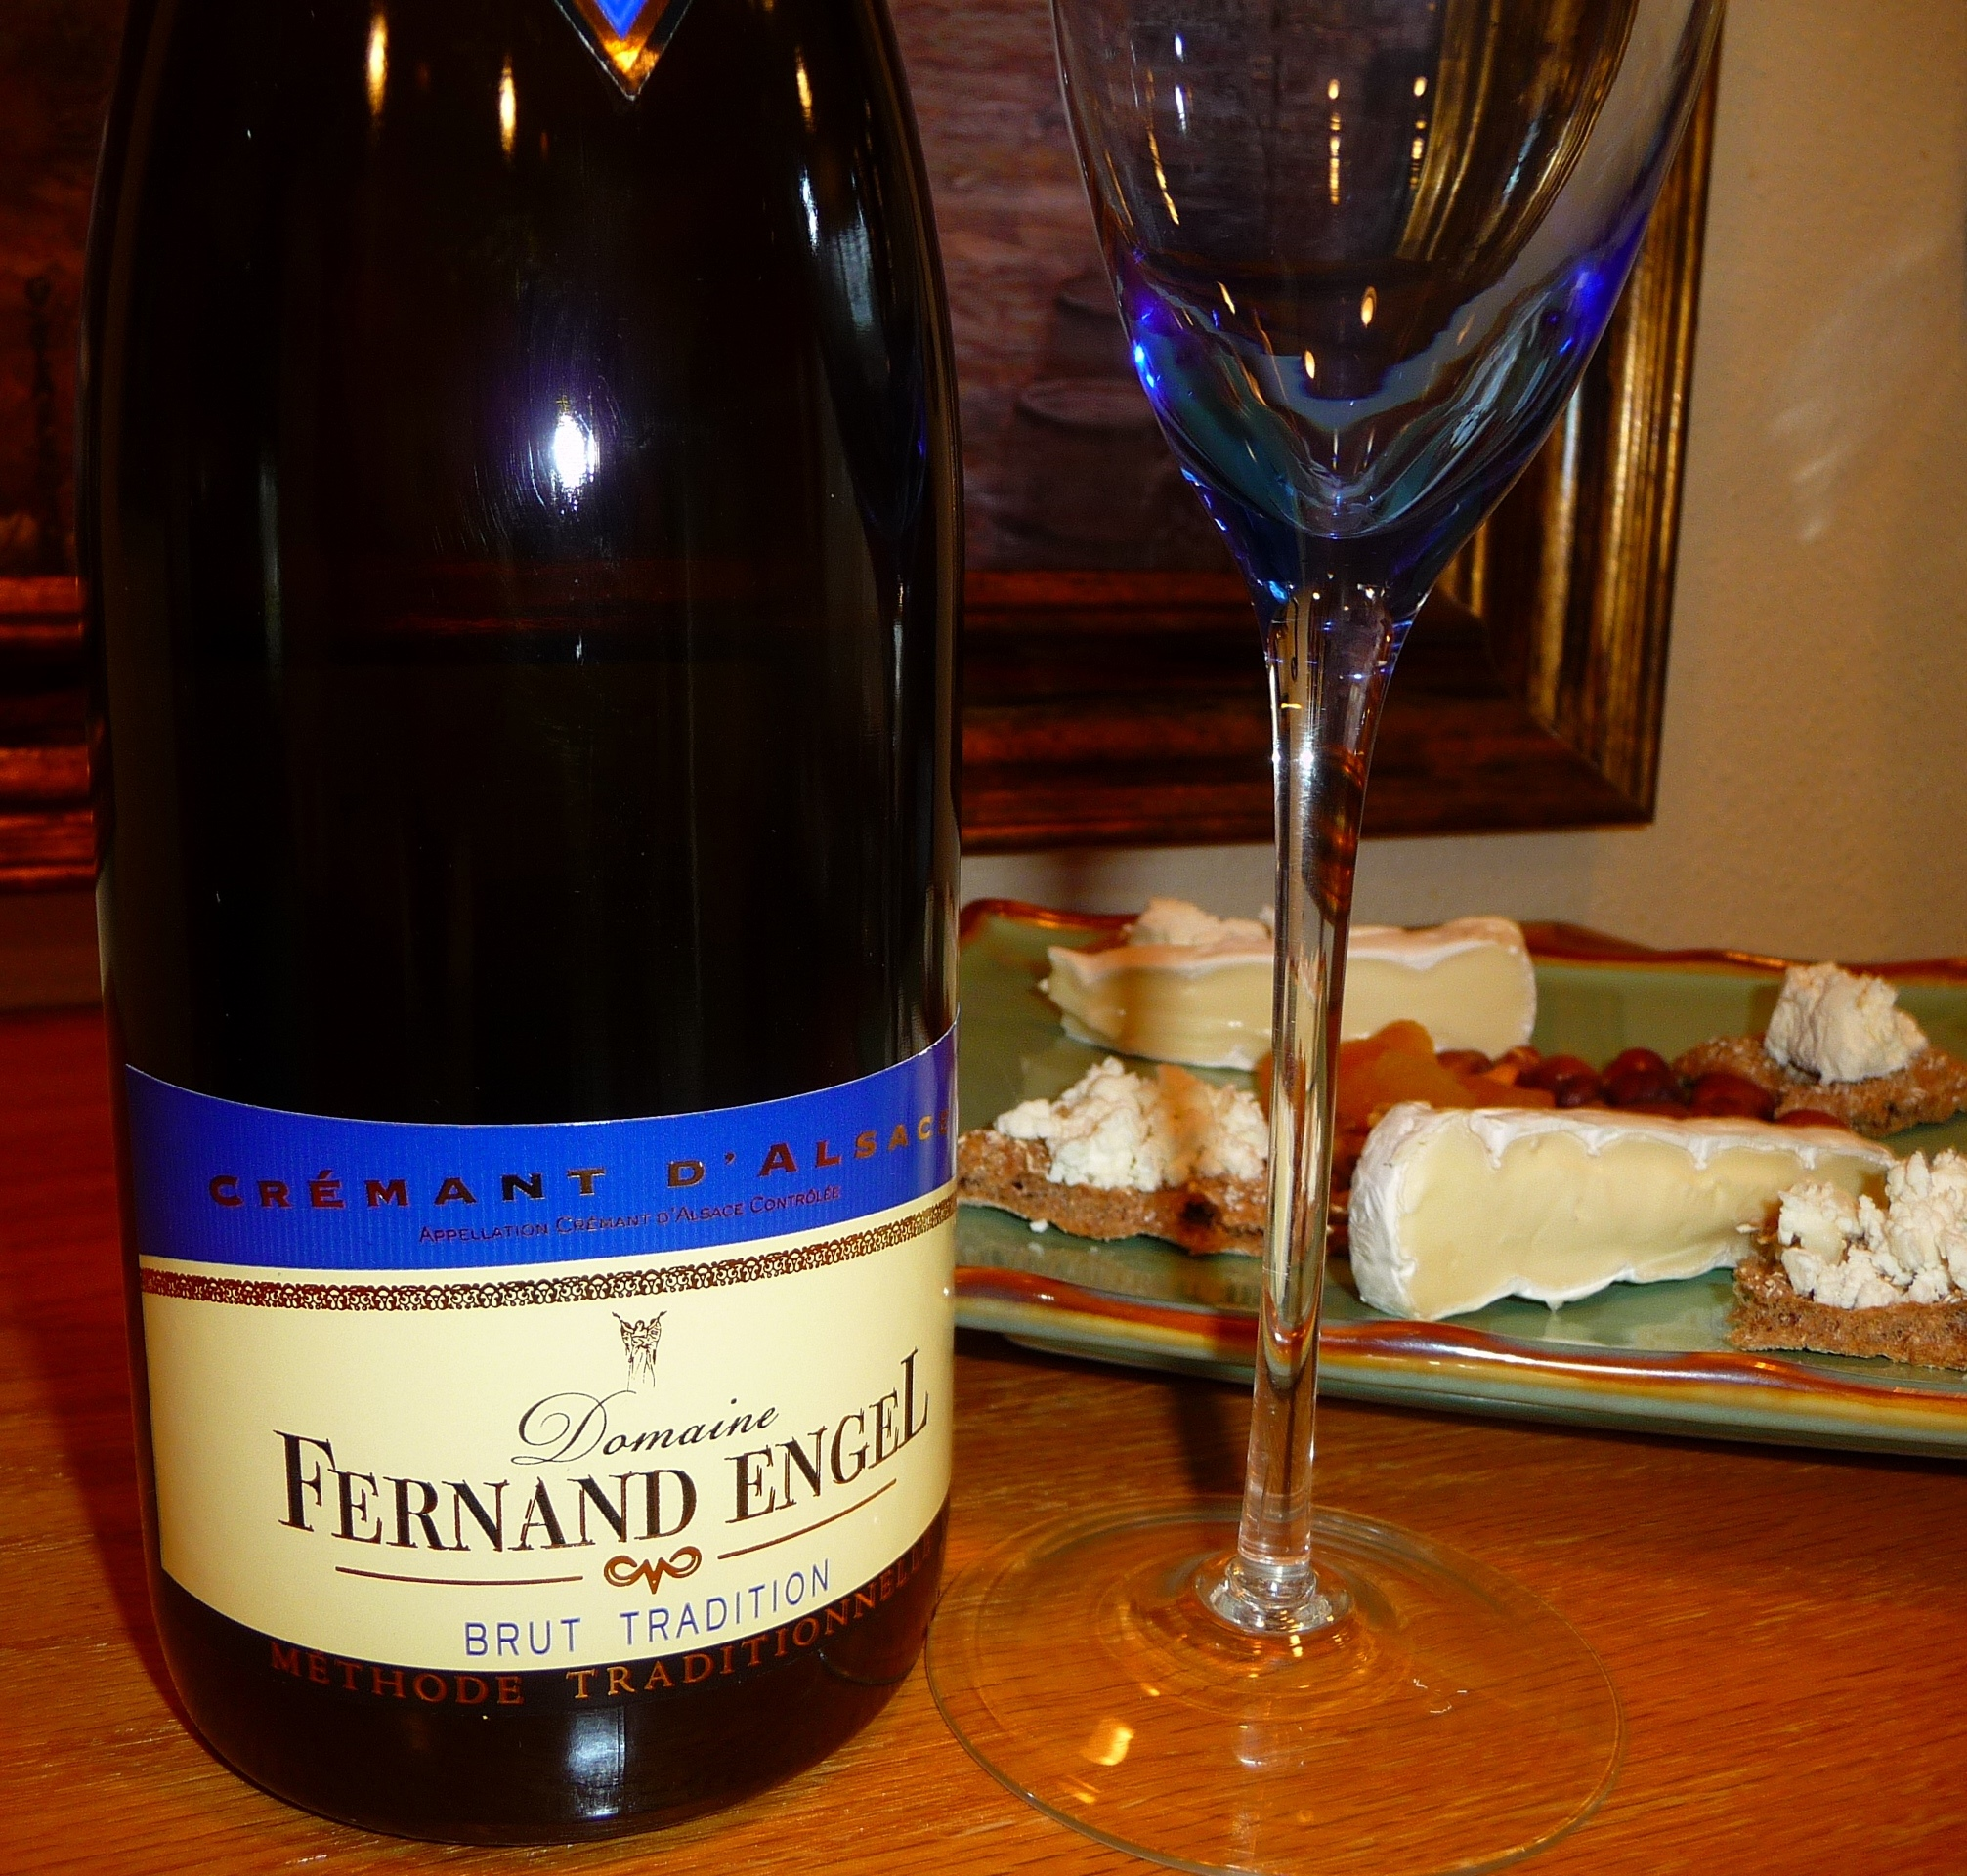 Sparkling wines are often suggested as an aperitif in light of how well they go with party fare. This Crémant D'Alsace  is perfect for holiday gatherings.